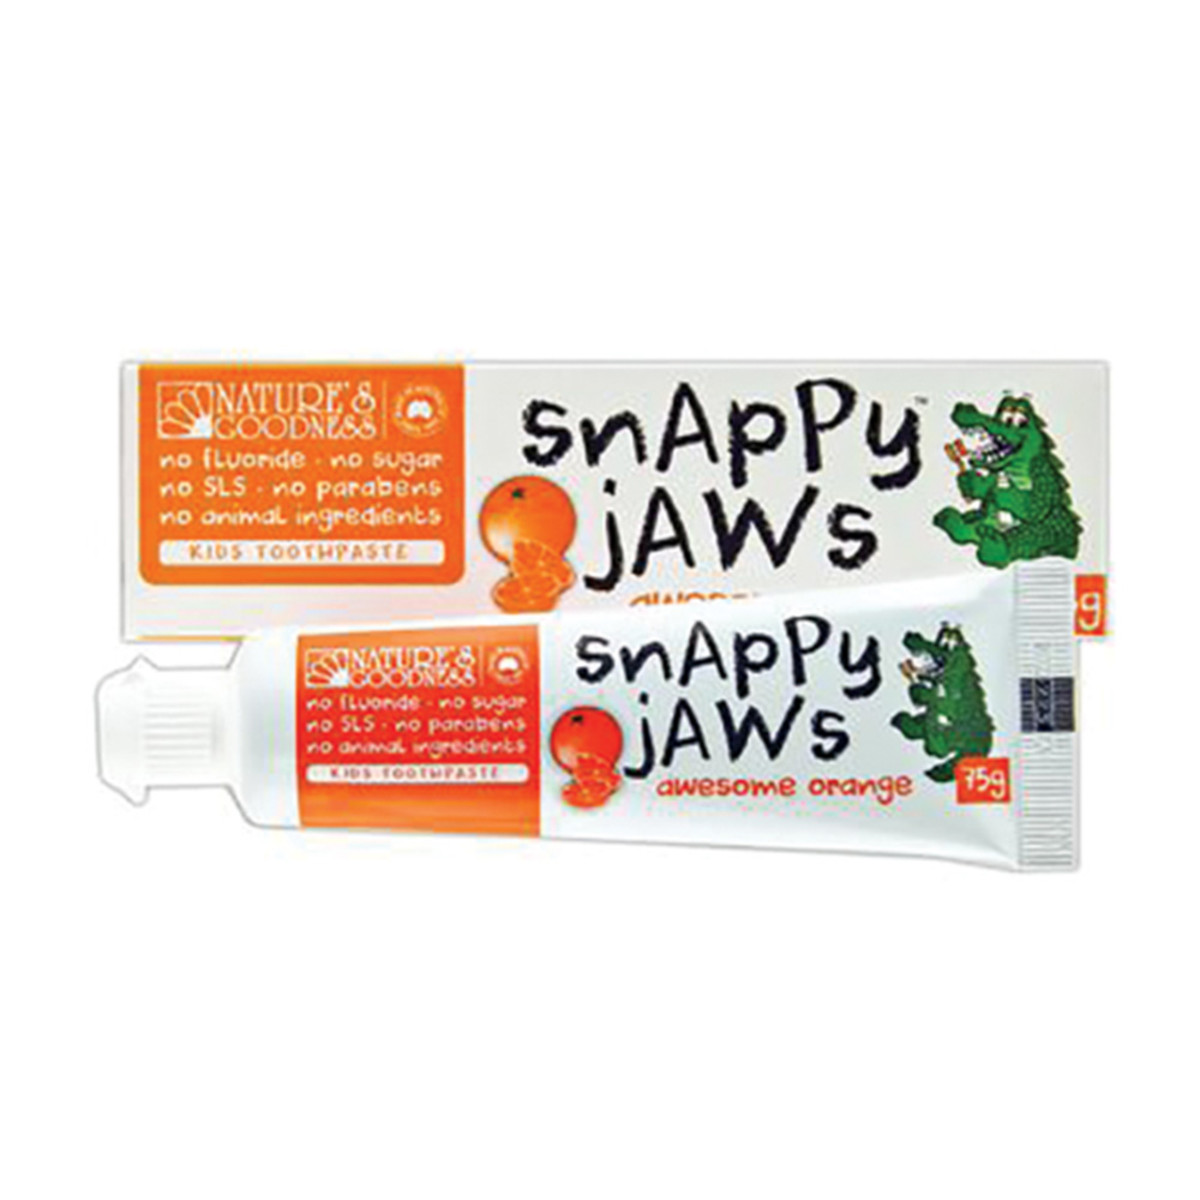 NATURE'S GOODNESS SNAPPY JAWS TOOTHPASTE ORANGE 75G